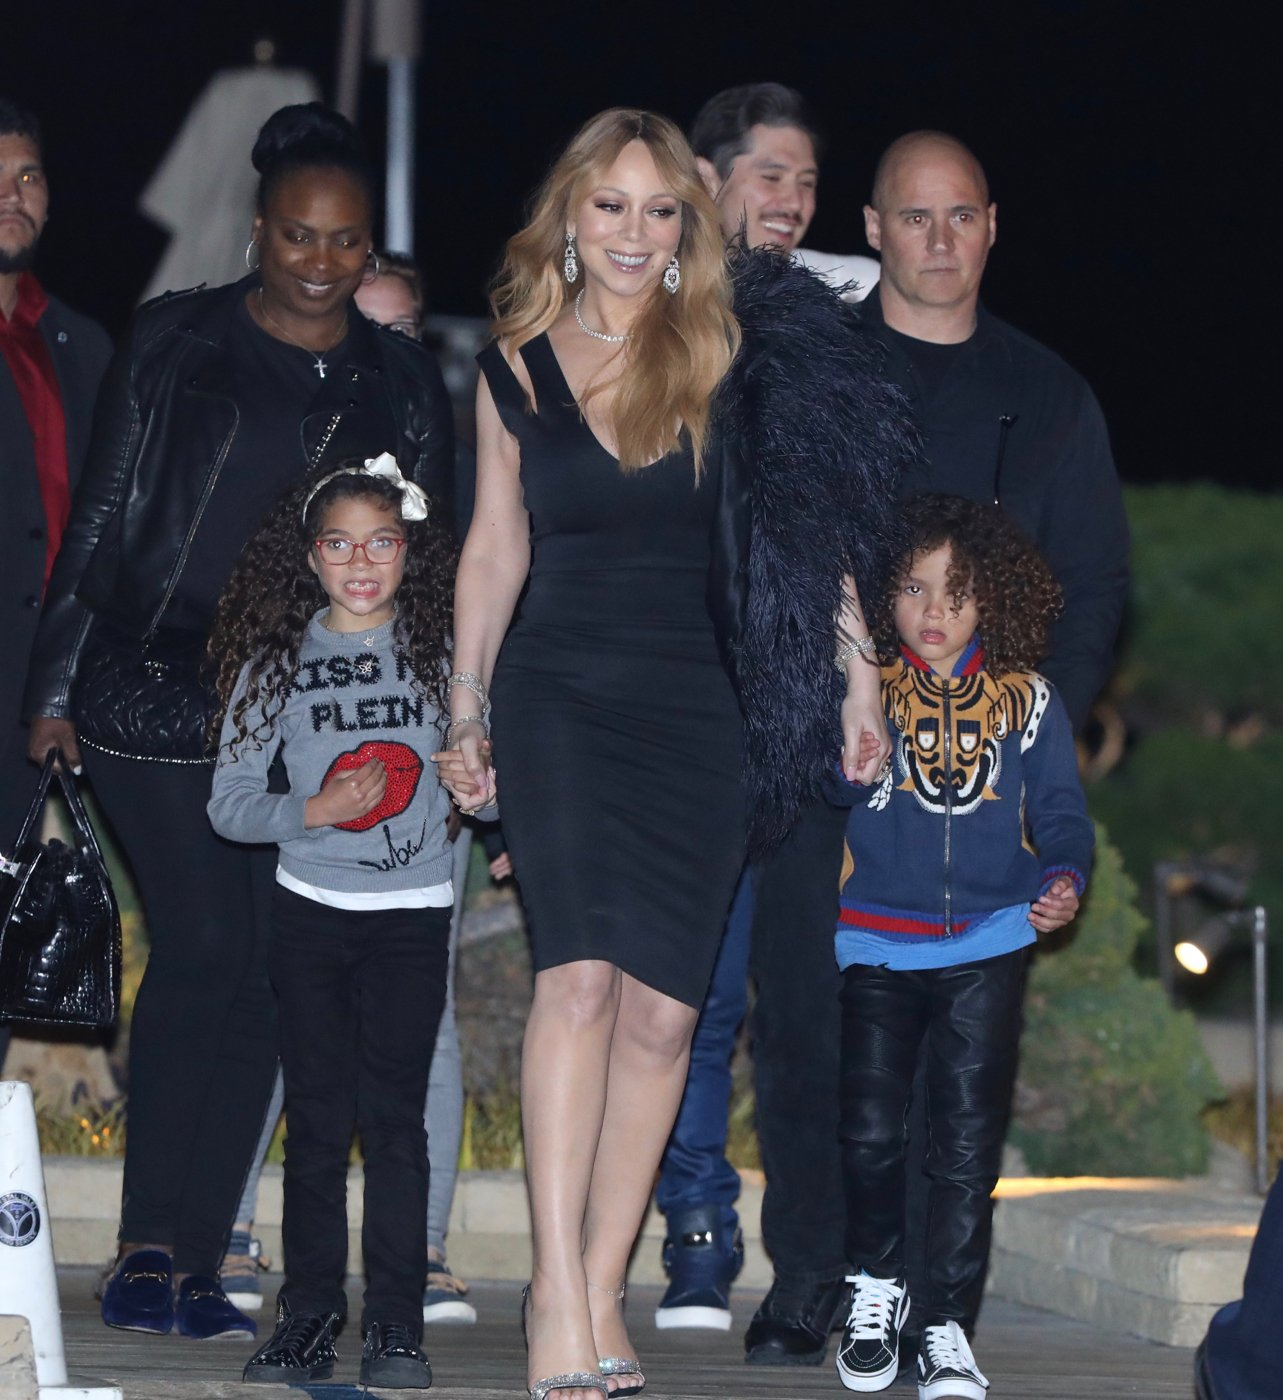 EXCLUSIVE: Mariah Carey and boyfriend on a Mother's Day outing with her children. While Mariah dined at Nobu, her seven-year-old twins, Monroe and Moroccan, preferred to eat at MacDonalds across the street.  ***SPECIAL INSTRUCTIONS*** Please pixelate children's faces before publication.***. 13 May 2018, Image: 371659042, License: Rights-managed, Restrictions: World Rights, Model Release: no, Credit line: Profimedia, Mega Agency